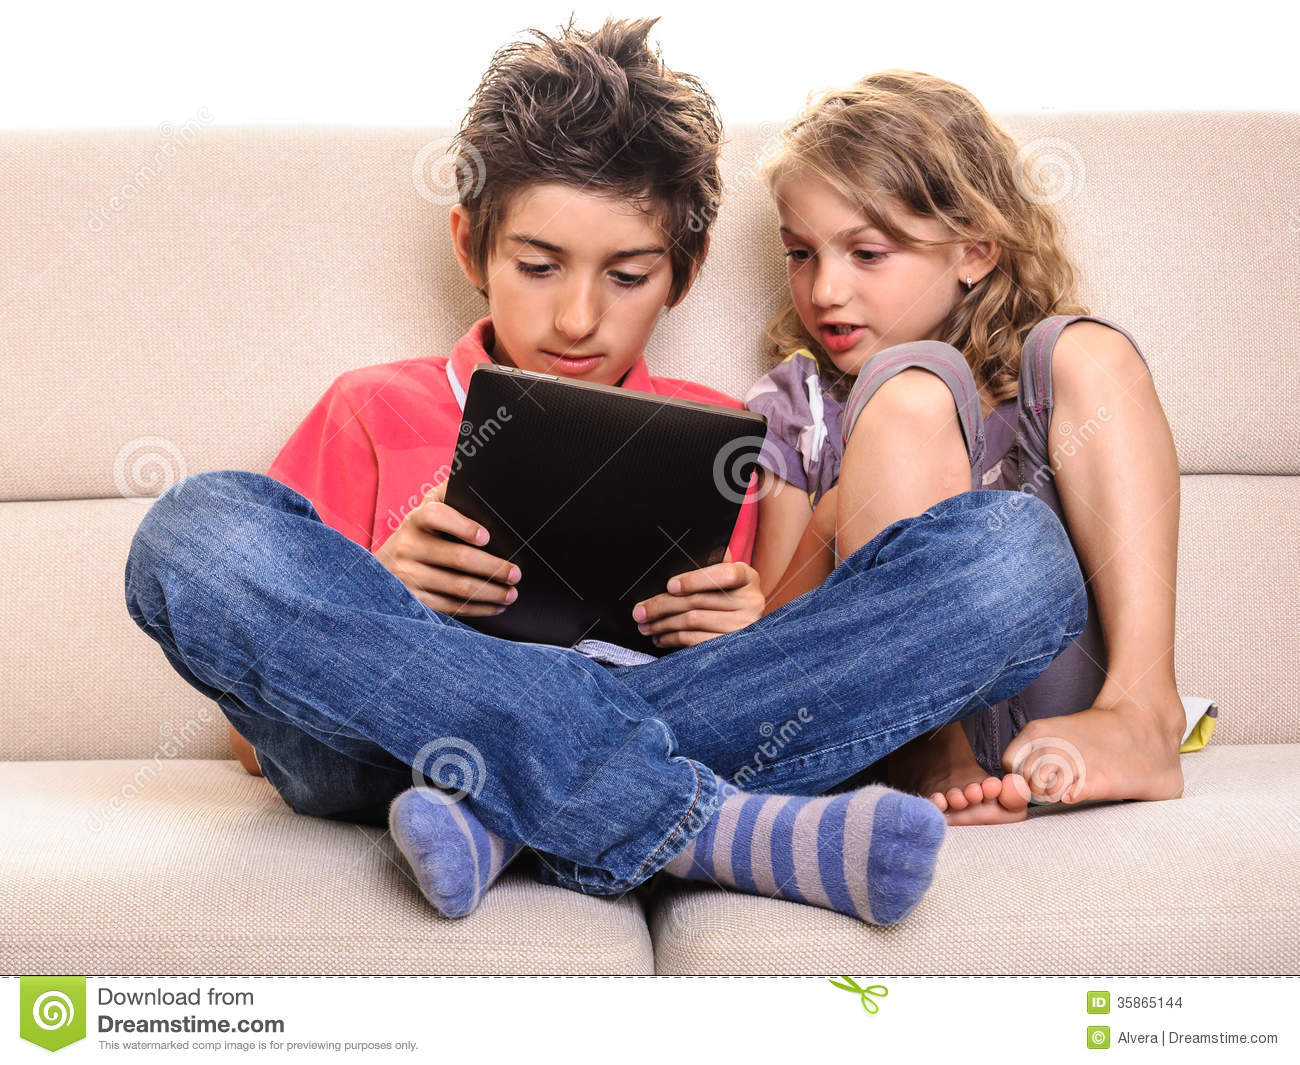 Happy Children Playing Digital Tablet Stock Photo Image  : happy children playing digital tablet beautiful boy girl video games pc home 35865144 from www.dreamstime.com size 1300 x 1065 jpeg 226kB